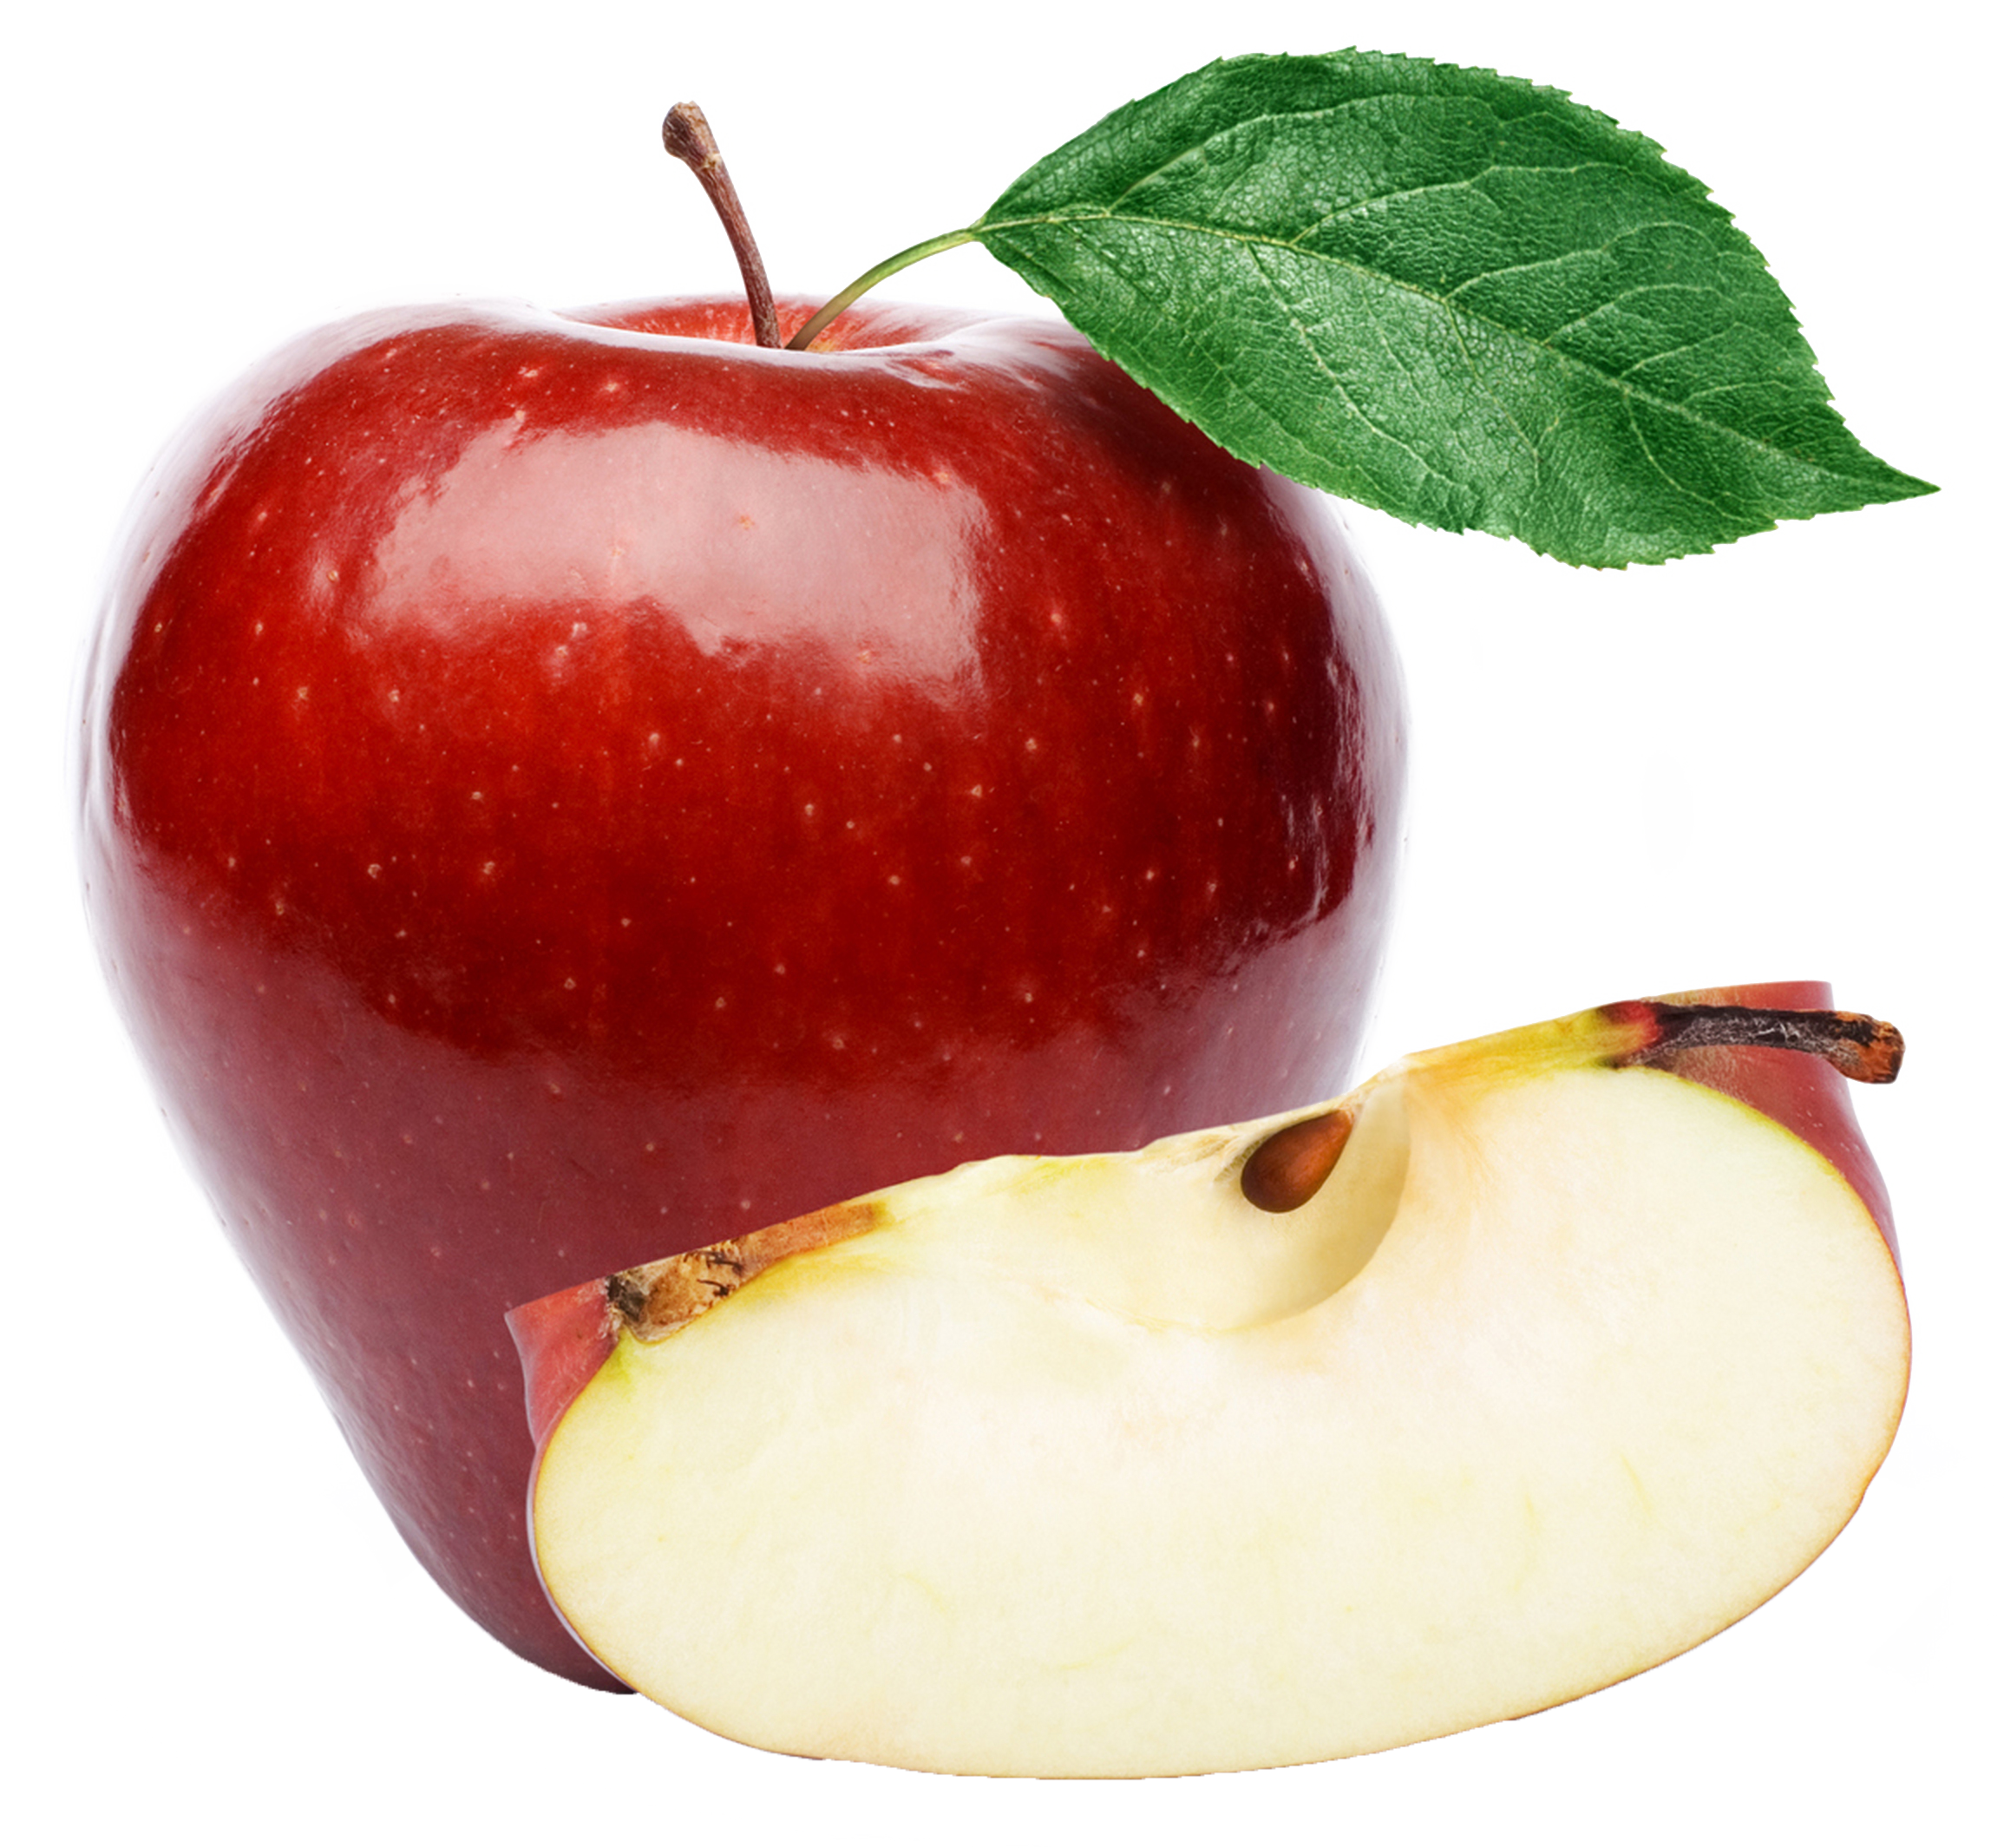 Red apple png. Large clipart gallery yopriceville